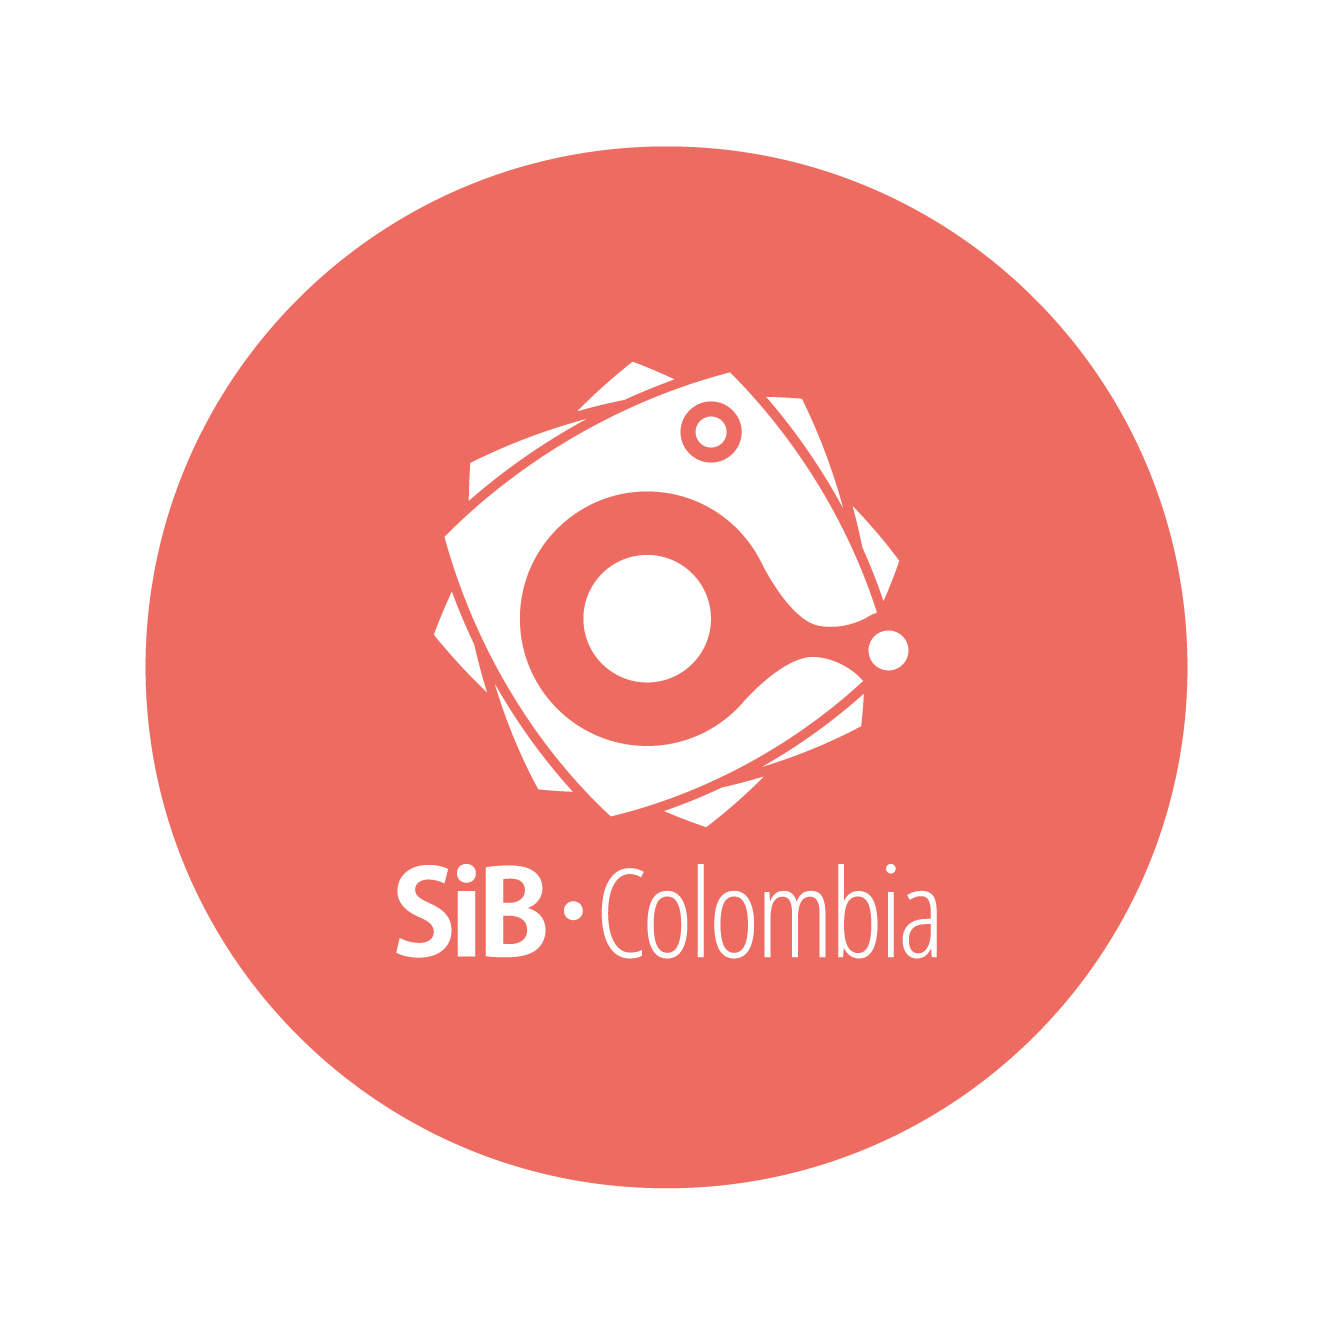 sib-colombia-25